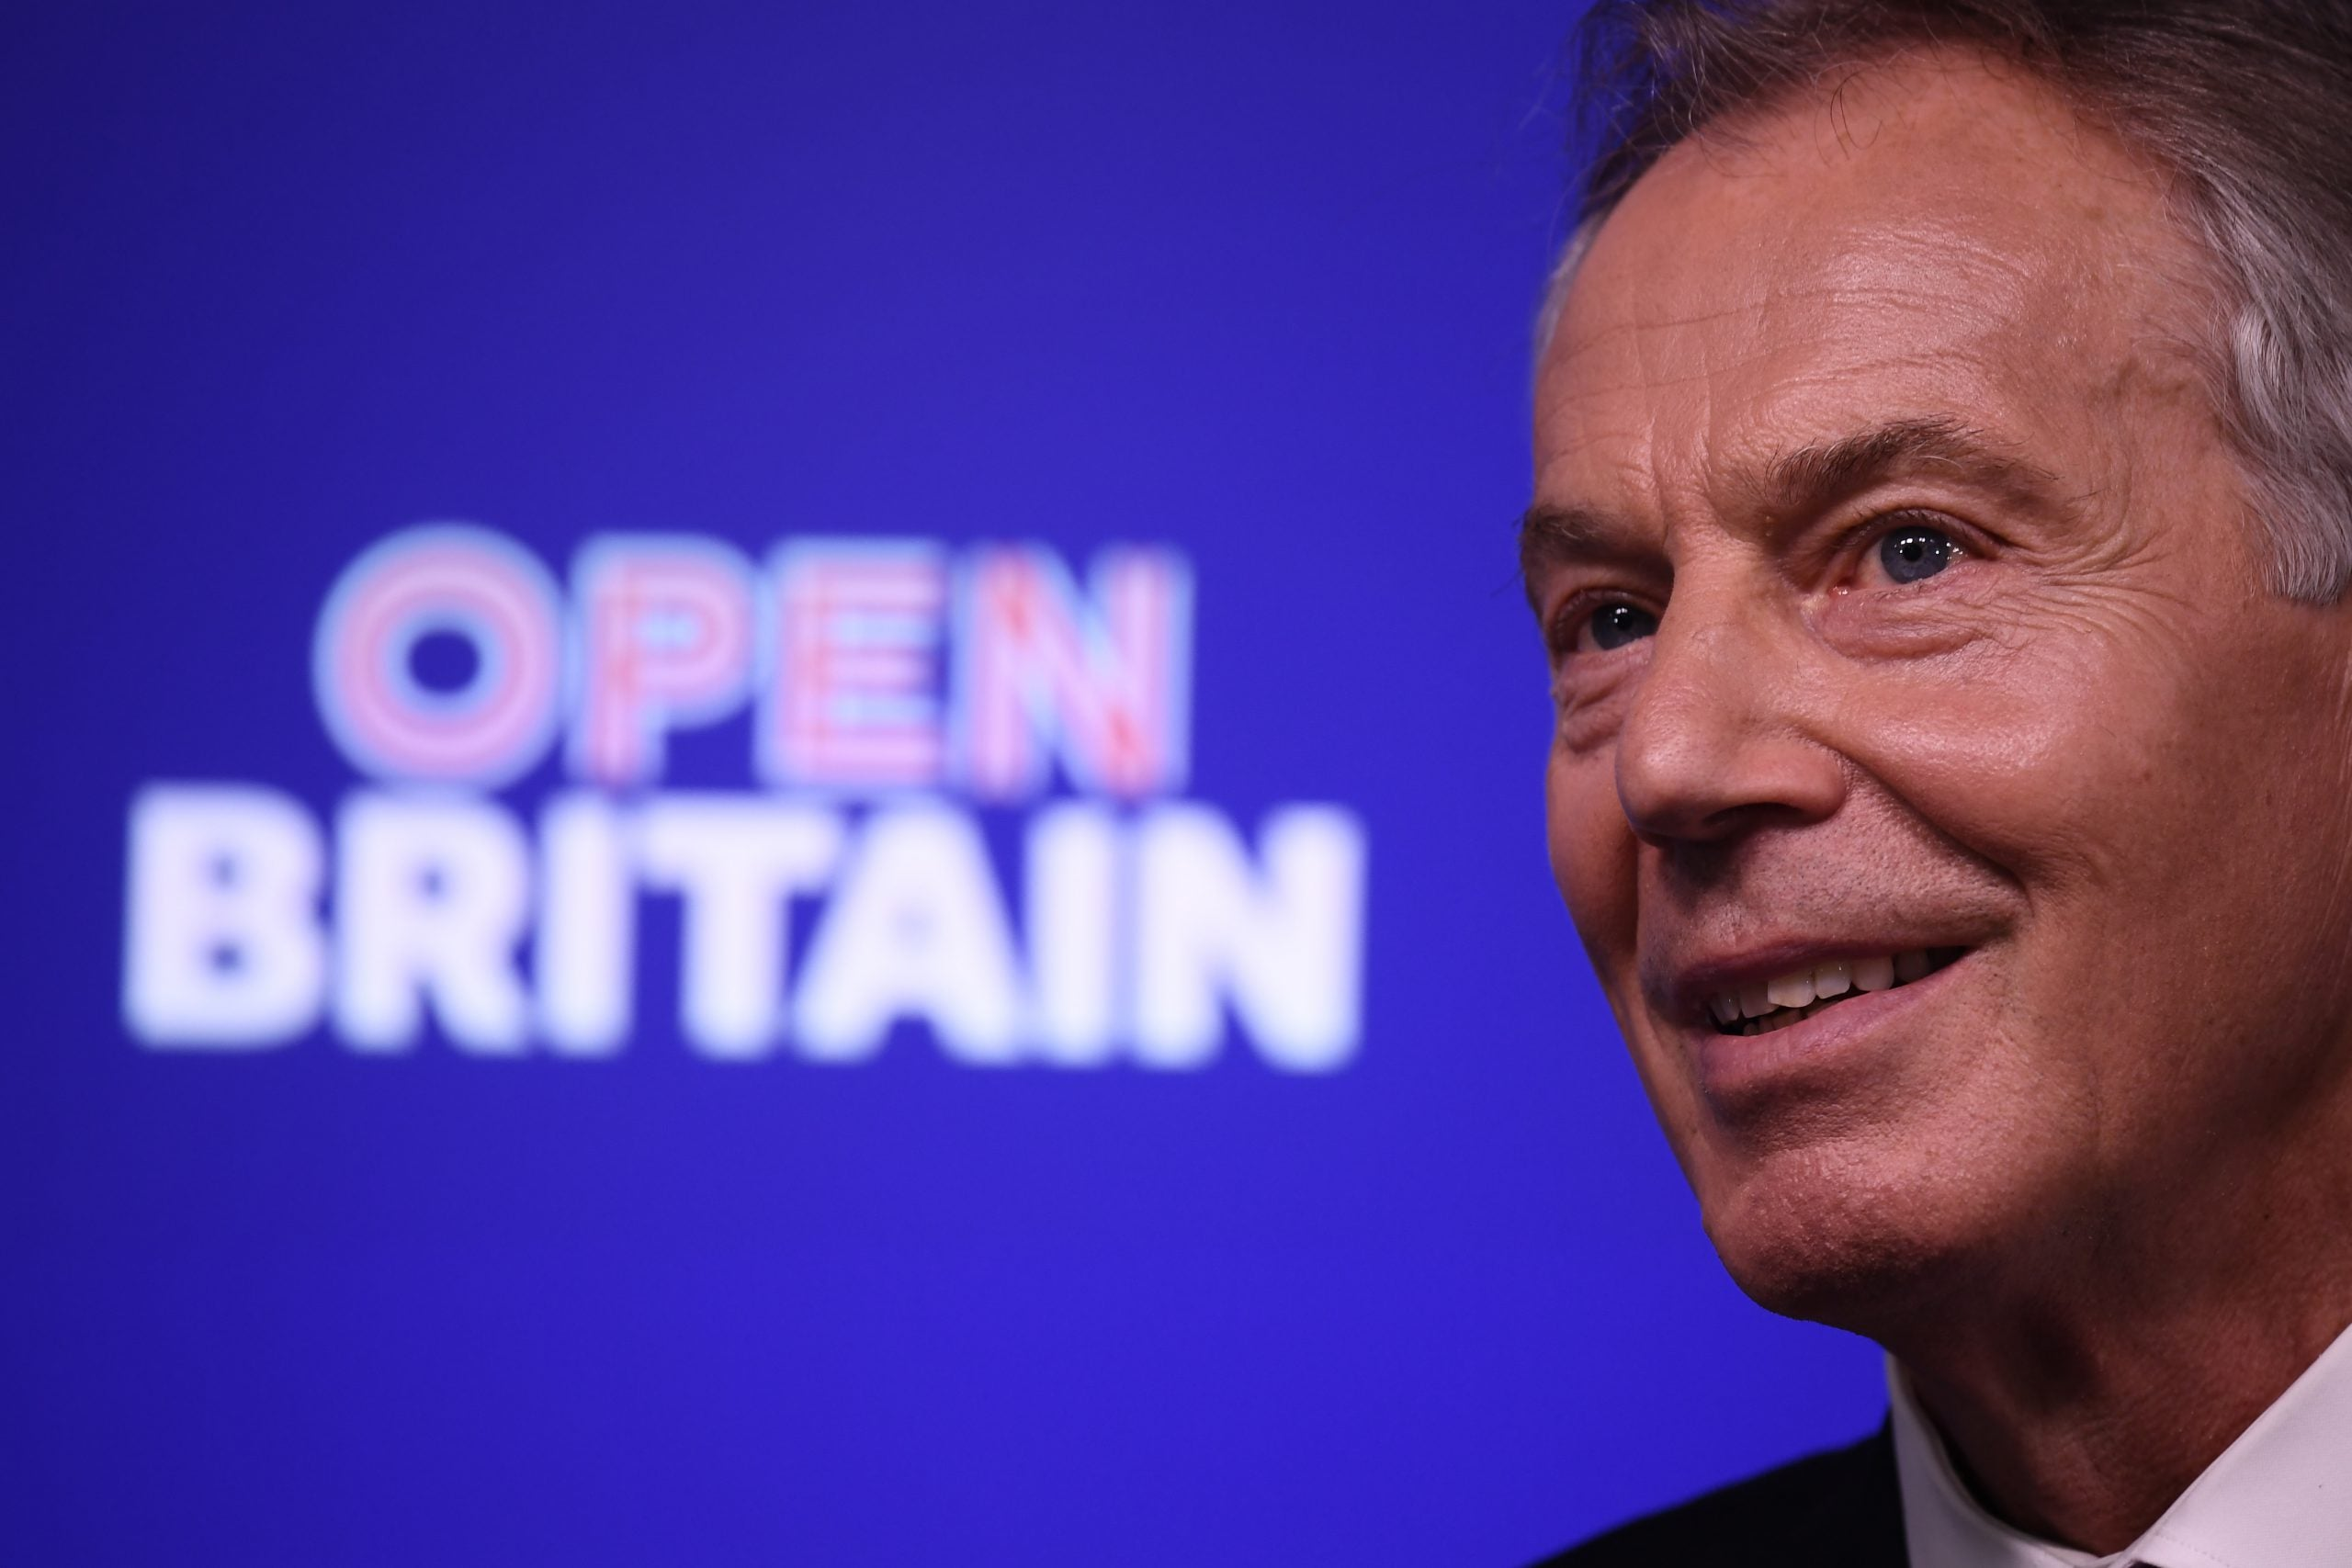 Tony Blair: Theresa May's Brexit deal isn't a deal. It's a political contrivance